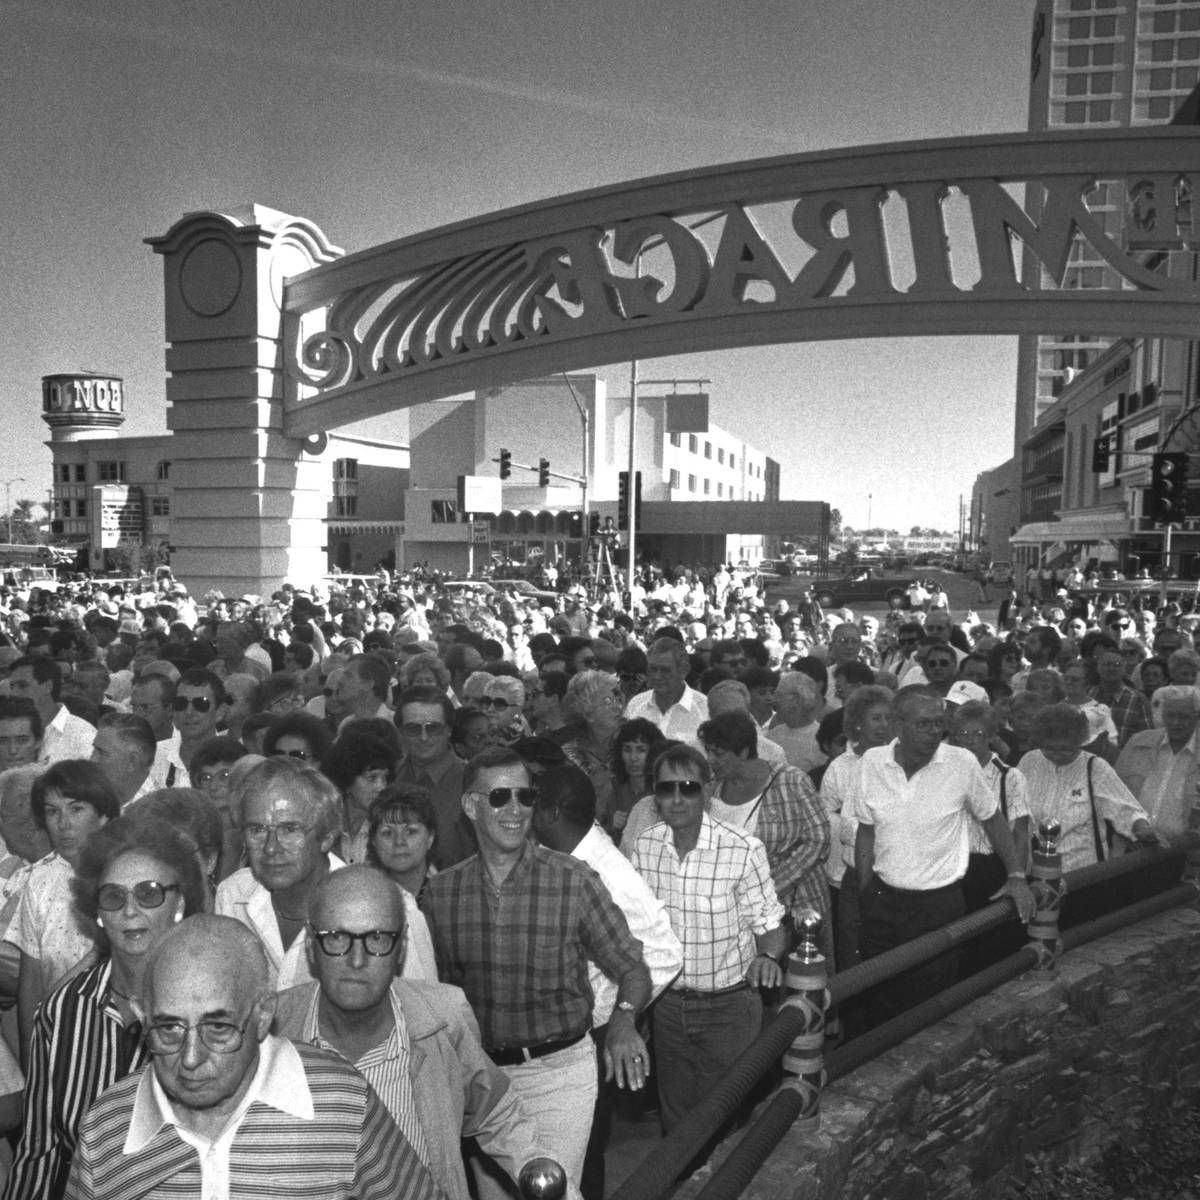 Within 30 minutes of its opening on Nov. 22, 1989, an estimated 40,000 visitors entered The Mir ...